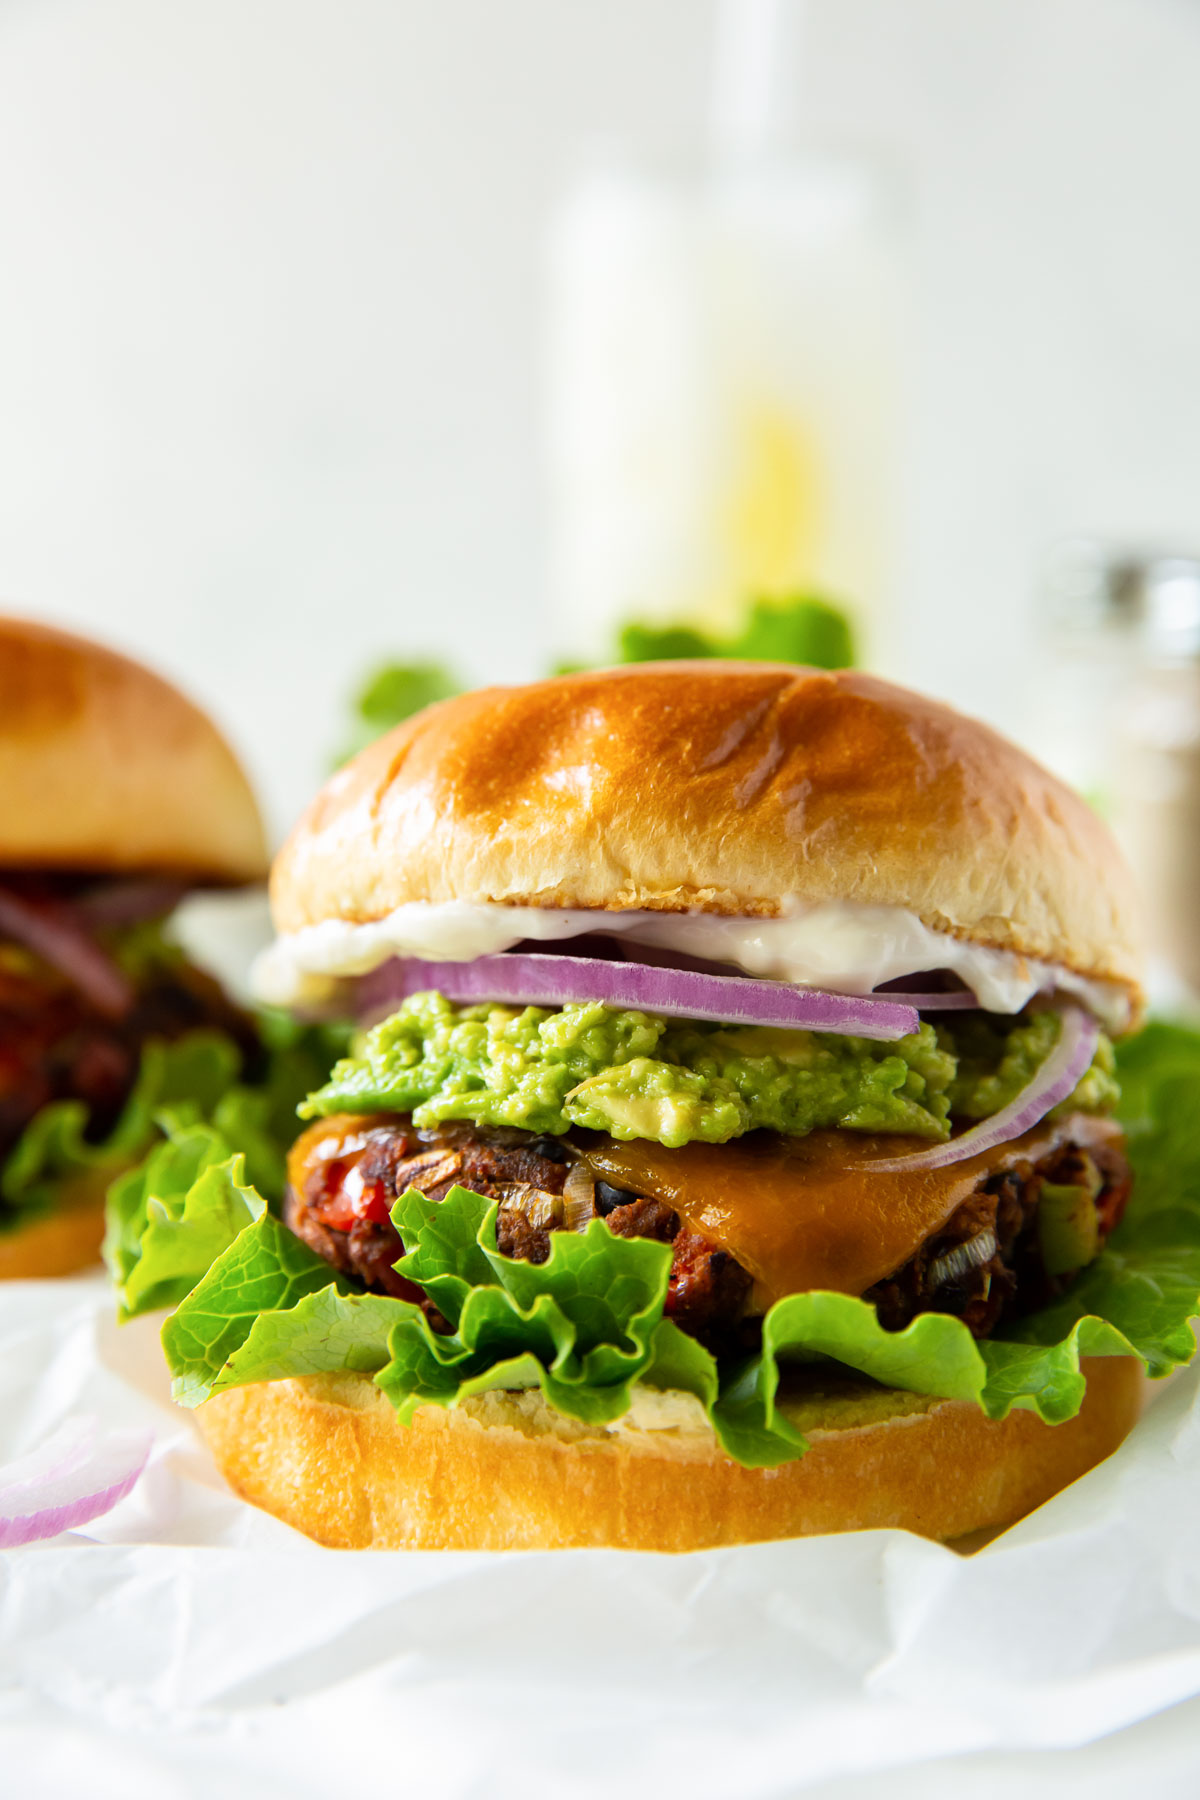 black bean burger with lettuce, cheese, red onion, guacamole and mayo